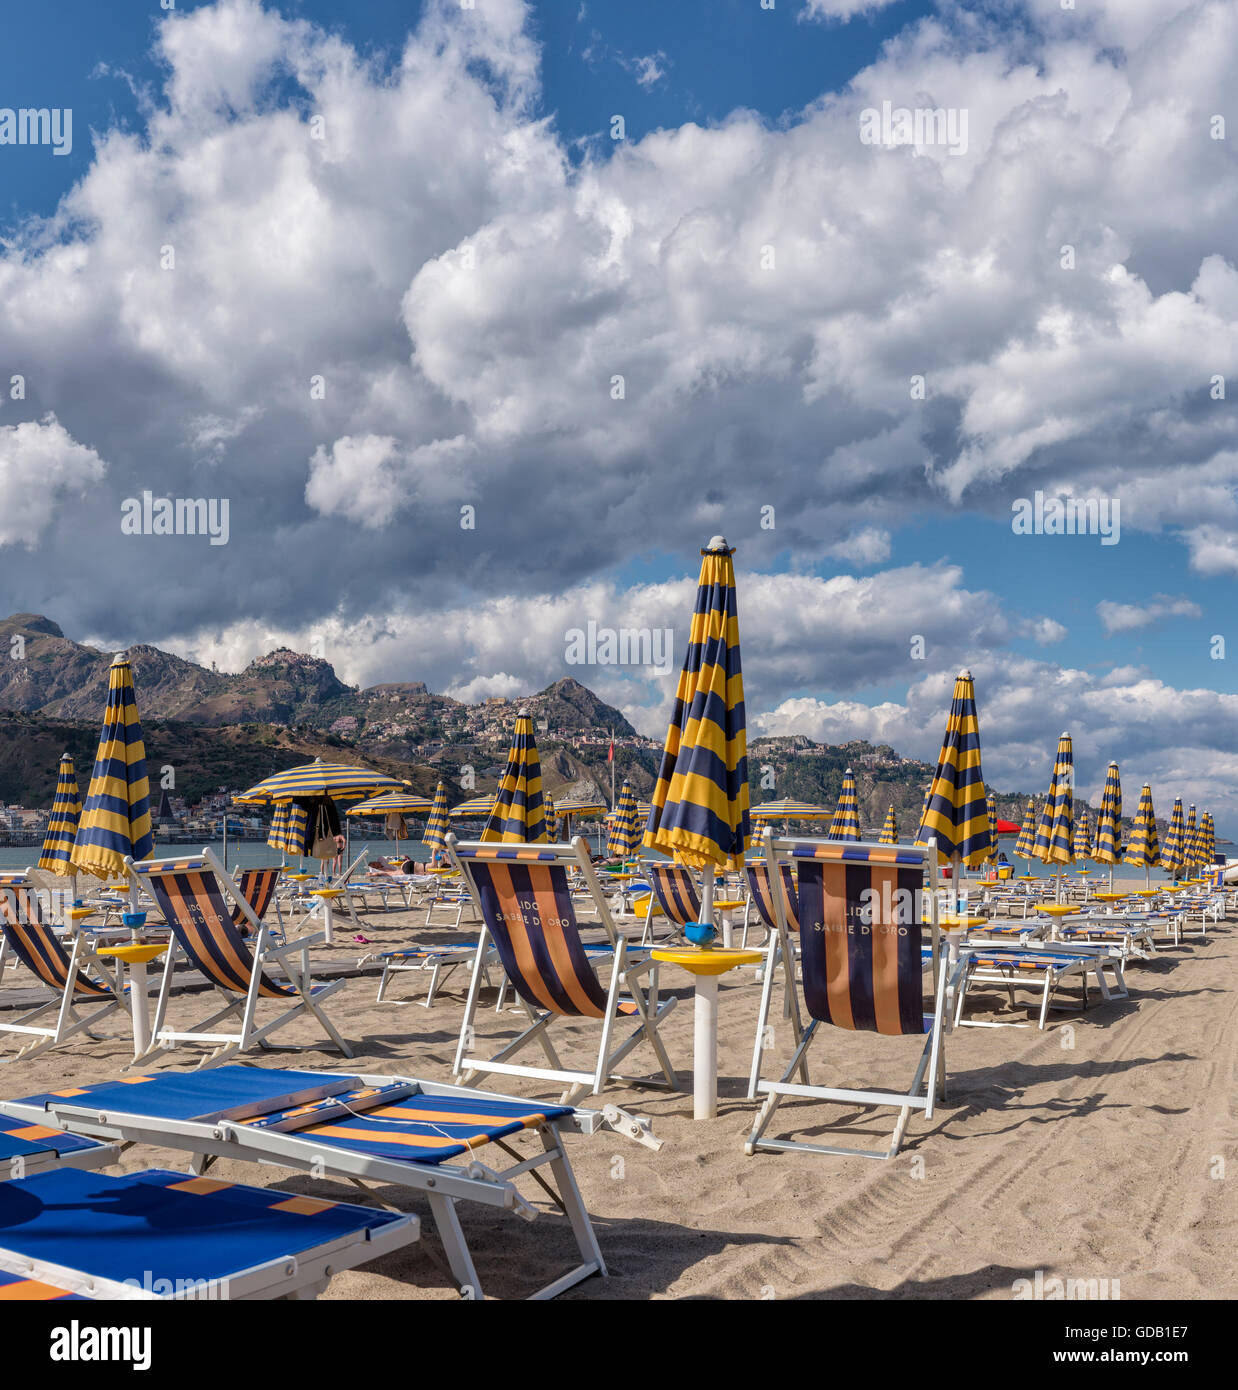 Deck chairs and sunshades,view towards Taormina on a mountain ridge - Stock Image